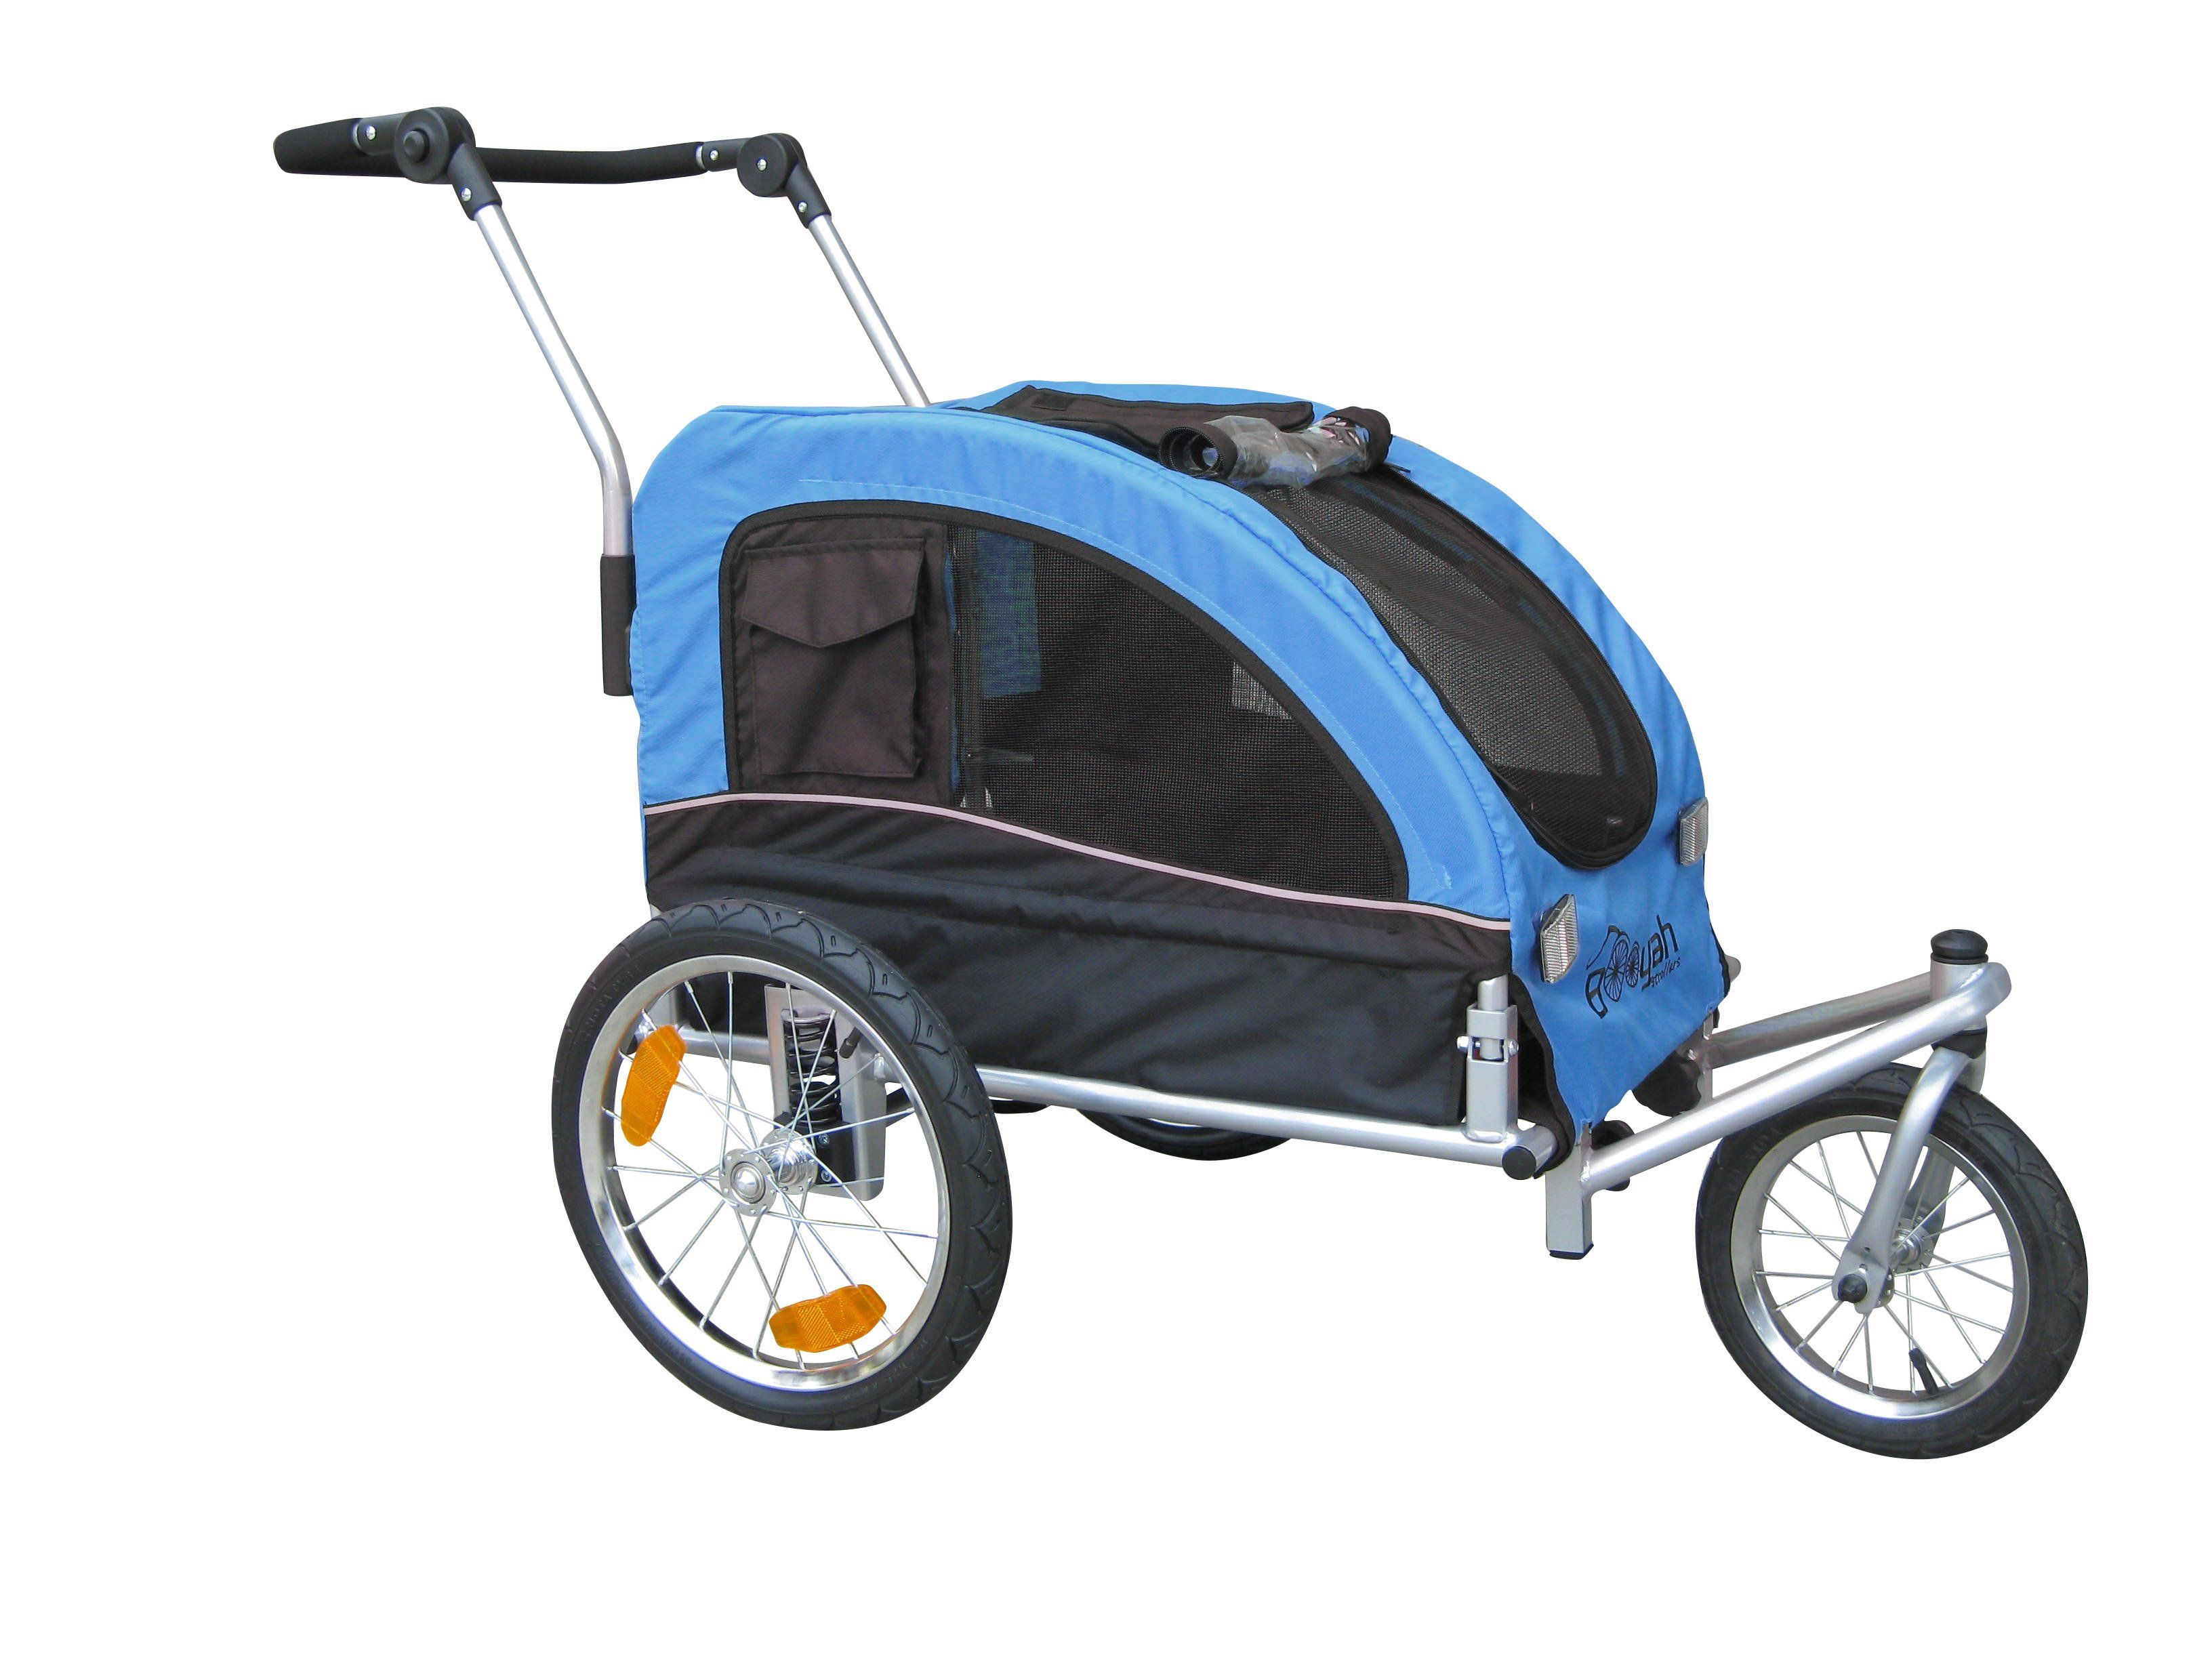 Booyah Medium Dog Stroller and Trailer Combo with